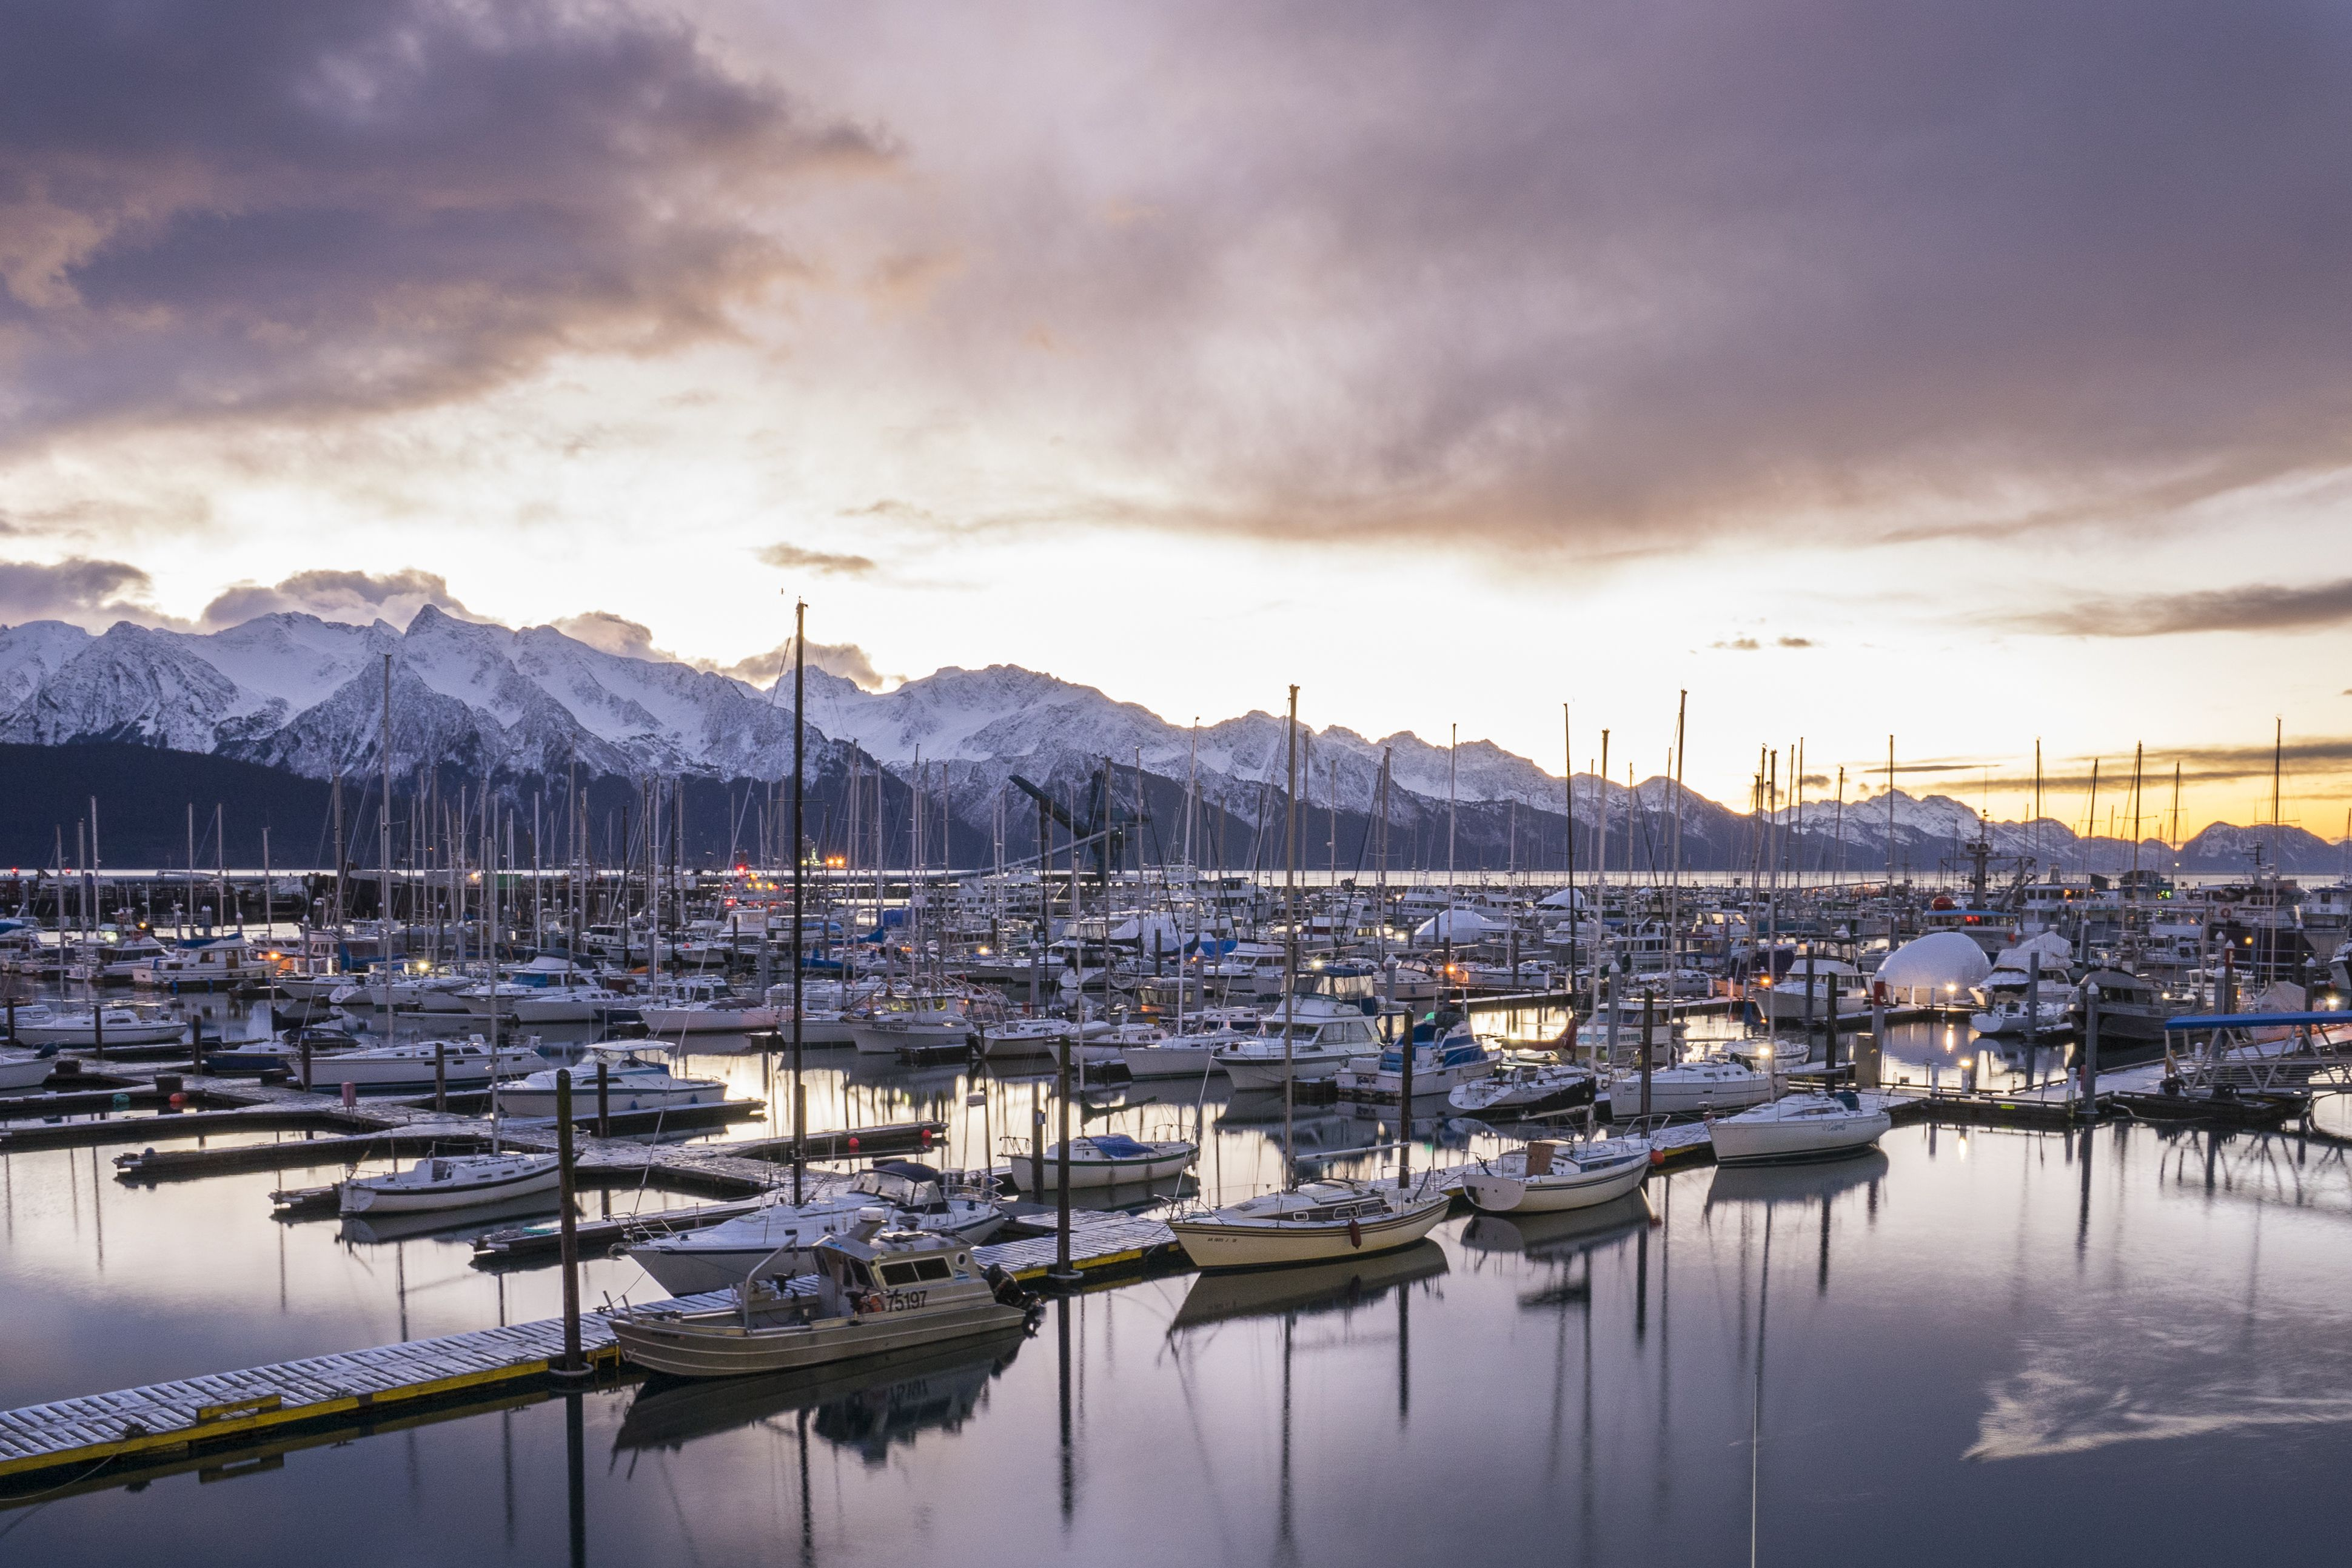 Winter Sunrise Views From Harbor 360 Hotel The Premier Waterfront Hotel In Seward Alaska Located D Kenai Fjords National Park Alaska Rv Parks And Campgrounds